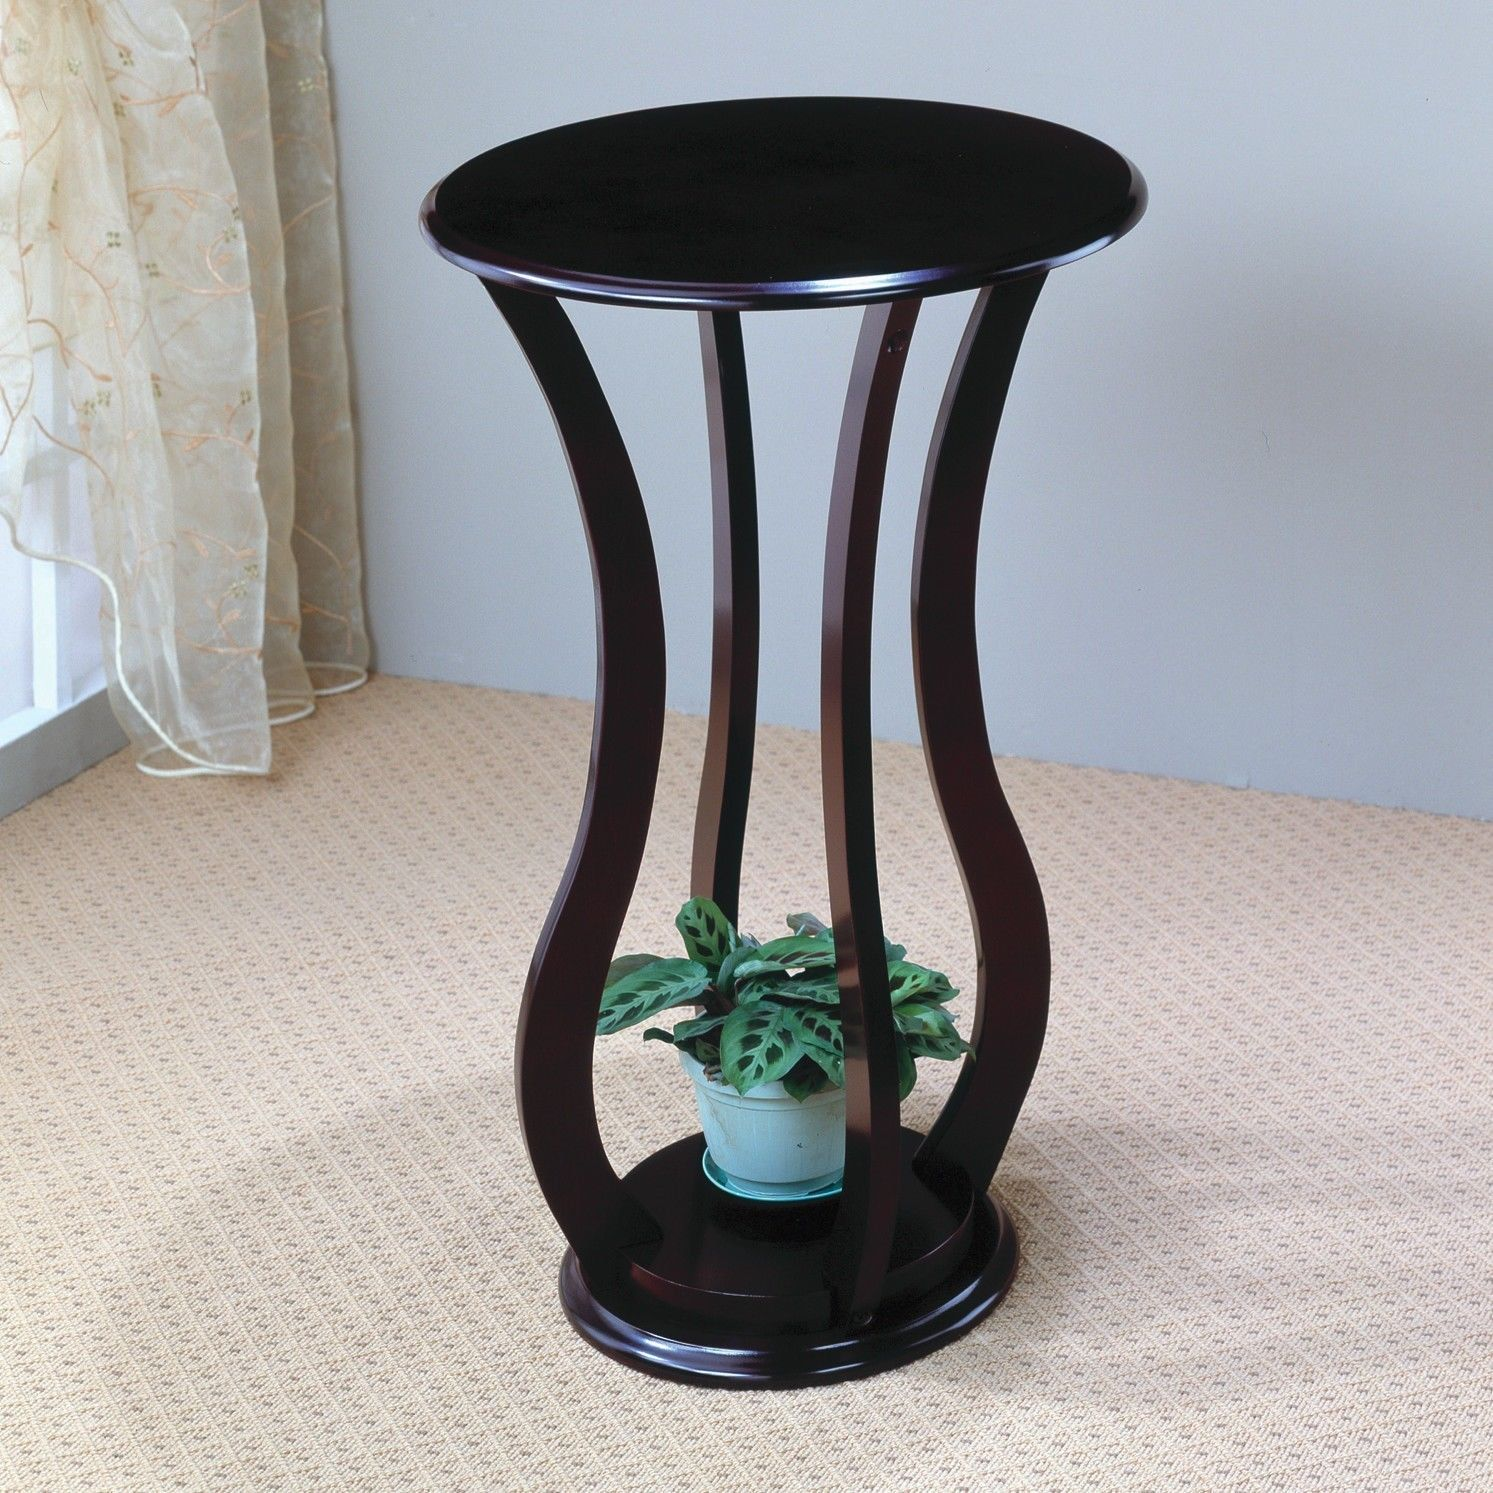 indoor plant stand wood round pedestal accent table modern display furniture new custom coffee tables door chest pads small antique oak target lamps tray slim white bedside long